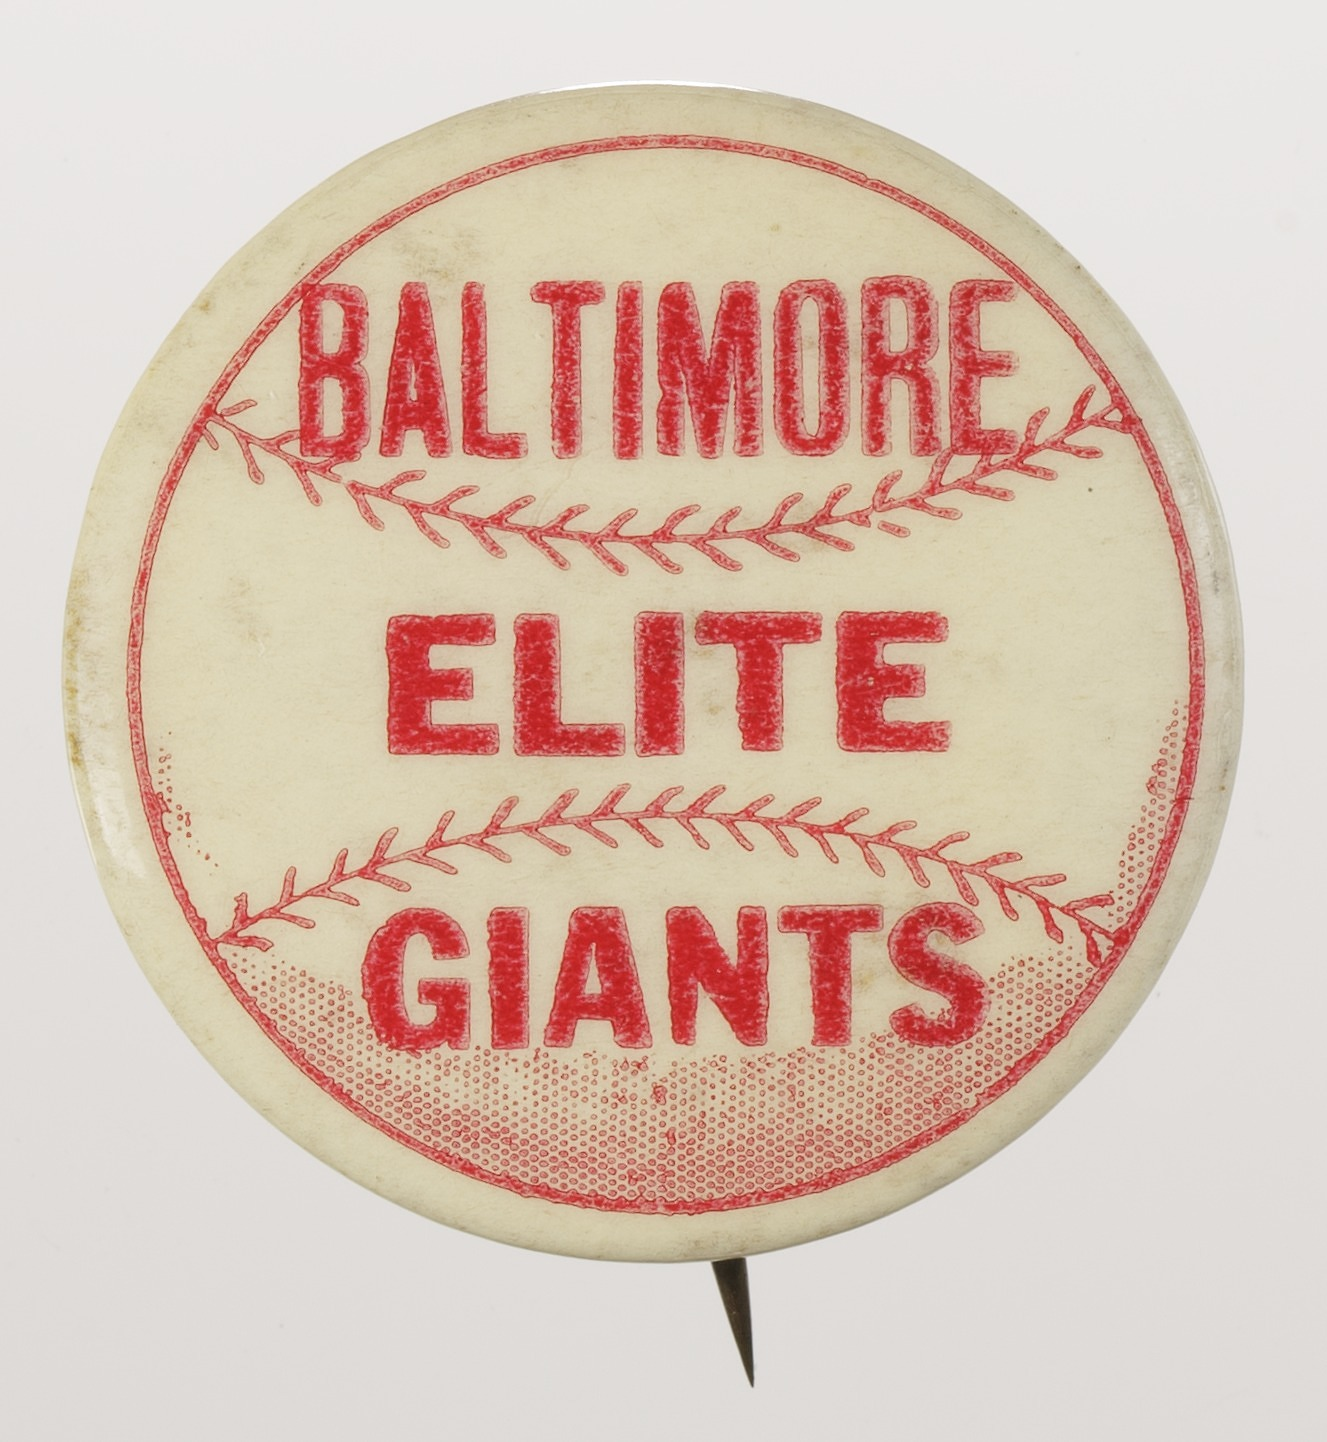 Image for Pinback button for the Baltimore Elite Giants